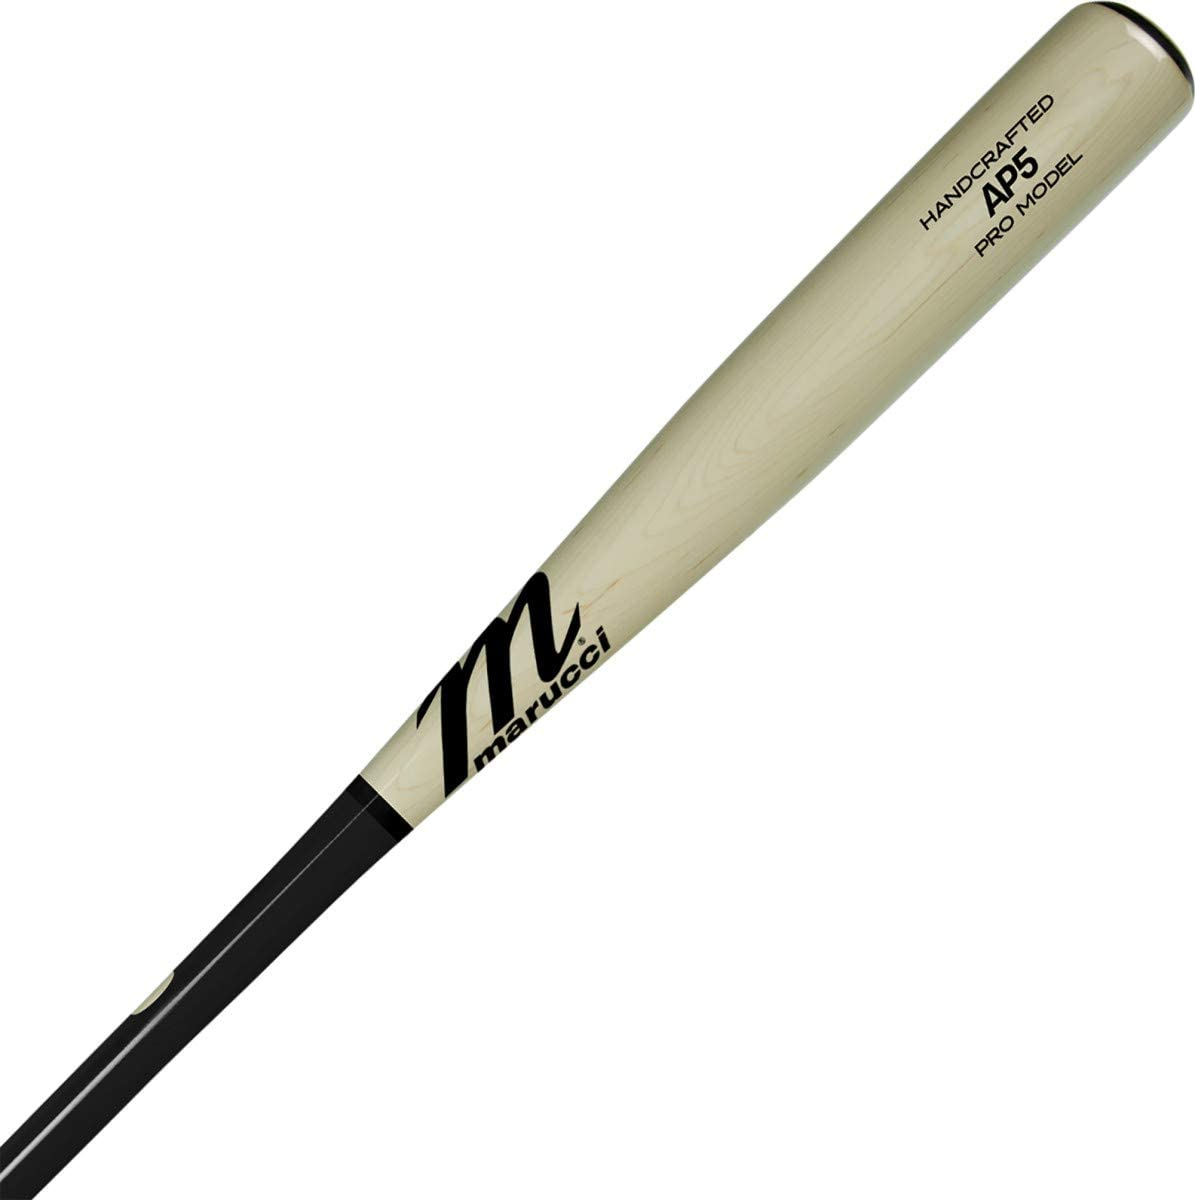 marucci-ap5-maple-pro-wood-baseball-bat-32-inch-black-natural MVE2AP5-BKN-32 Marucci 840058700015 Knob Tapered. Handle Tapered. Barrel Large. Feel End Loaded. Handcrafted from